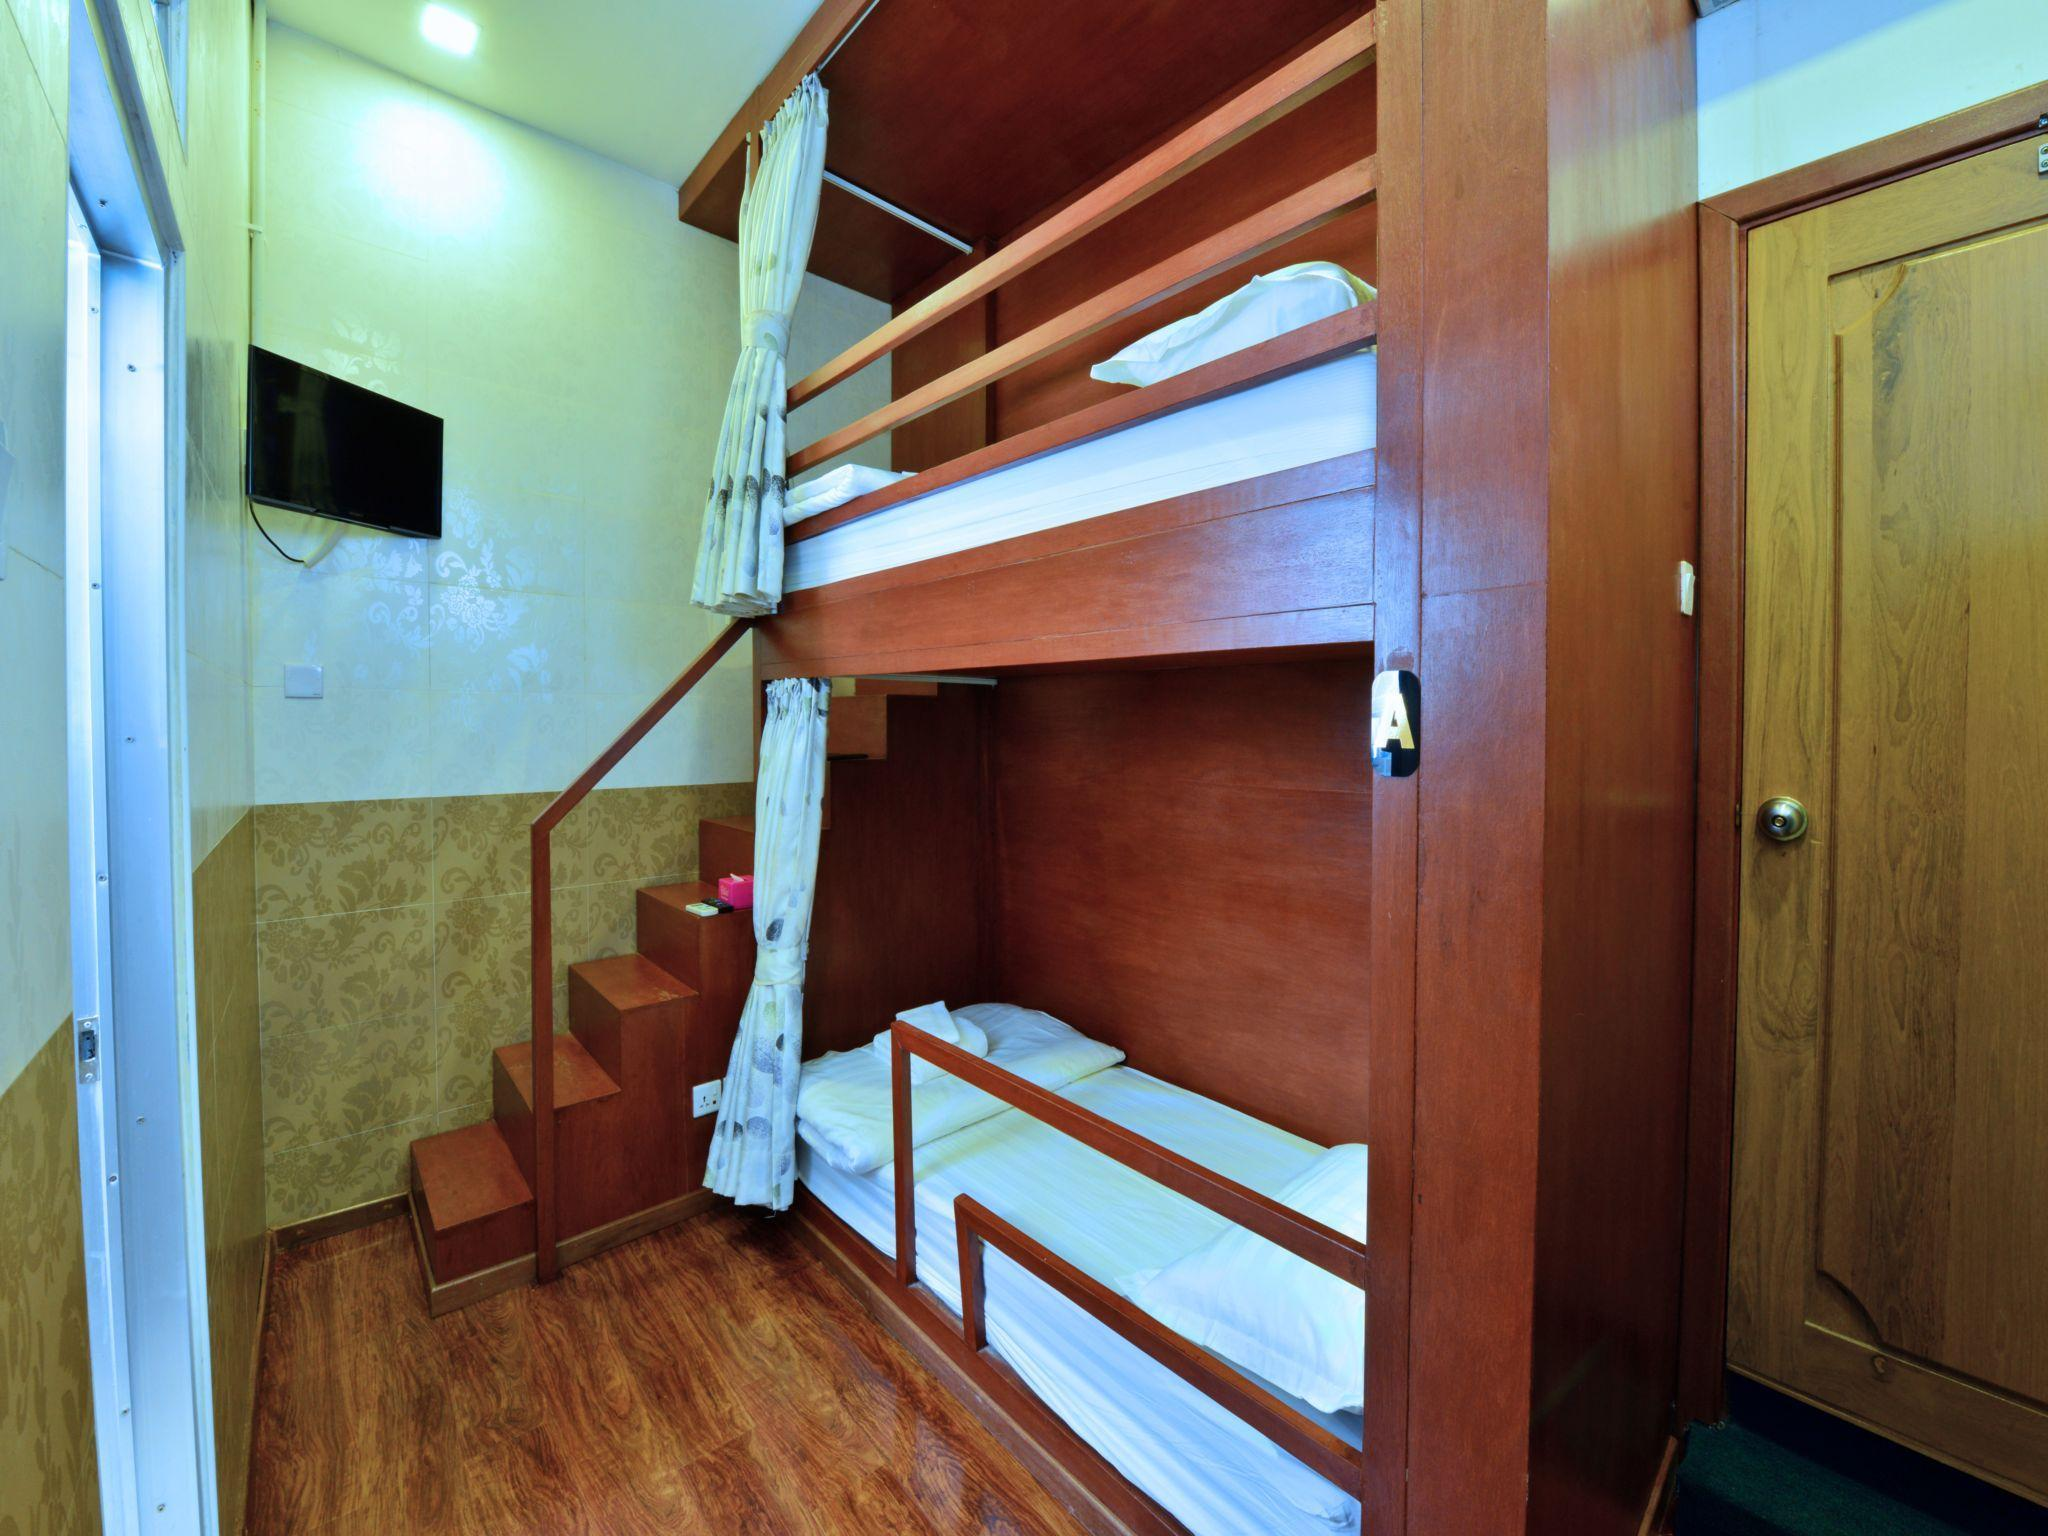 1個床位(2人男生宿舍) (1 Bed in 2-Bed Dormitory (Male))